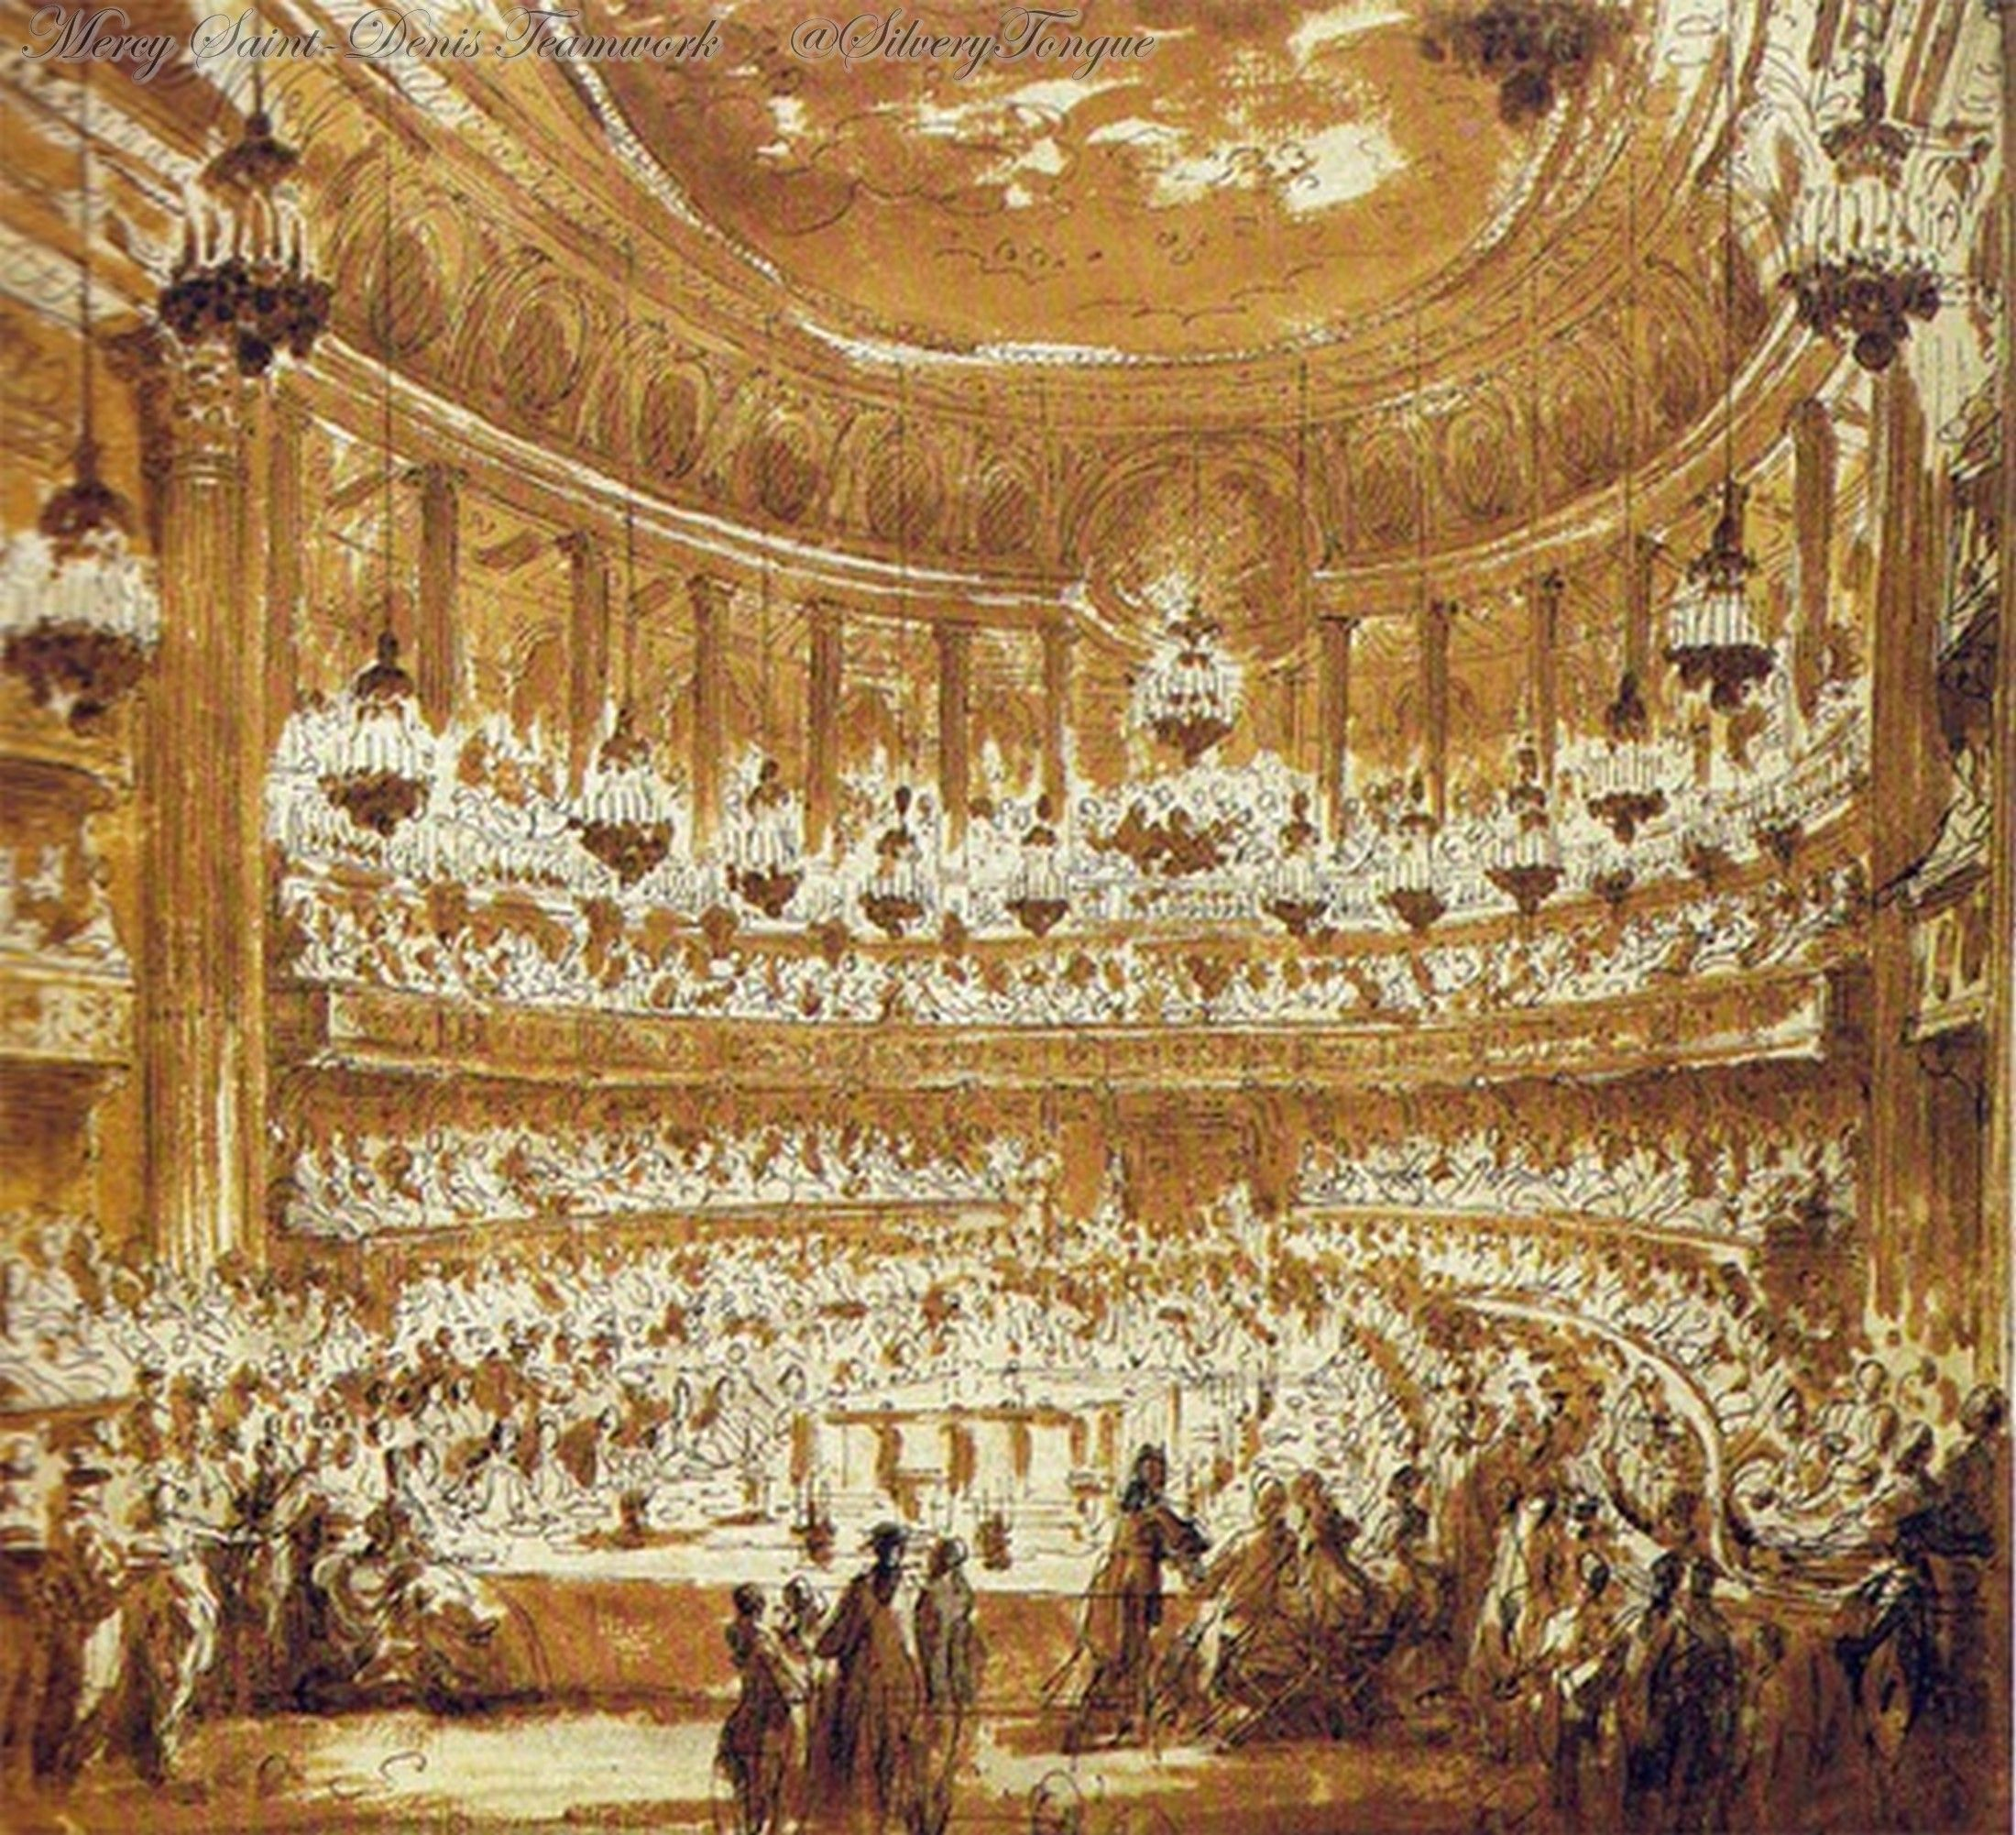 The marriage dinner of the dauphin, the future Louis XVI with Marie Antoinette at the Opera at Versailles, May